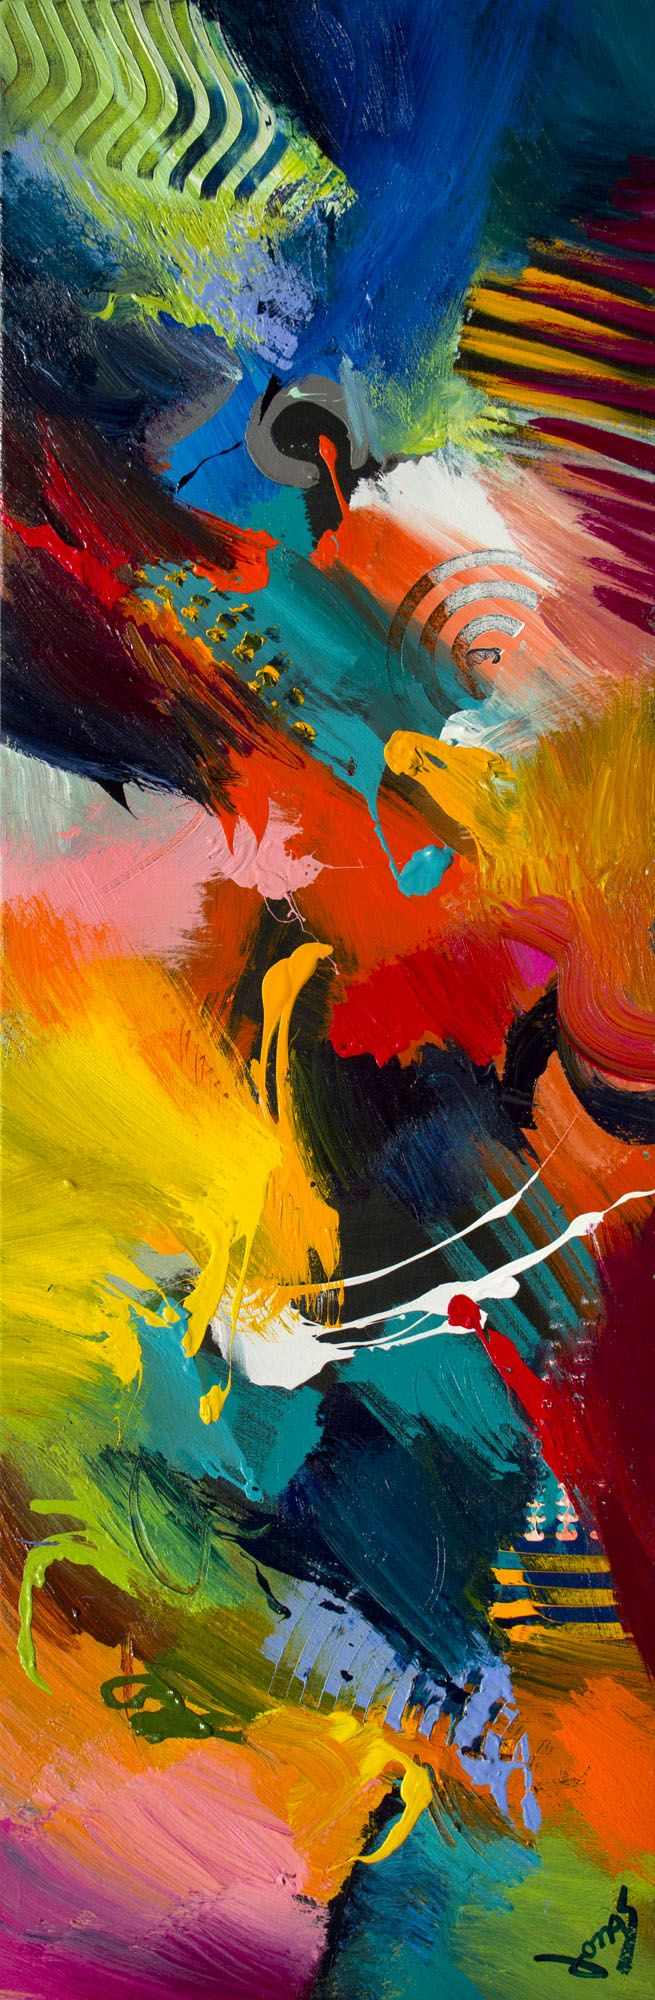 Effervescence II - acrylic on canvas, 20 x 60 inches. Original abstract painting by Jonas Gerard.